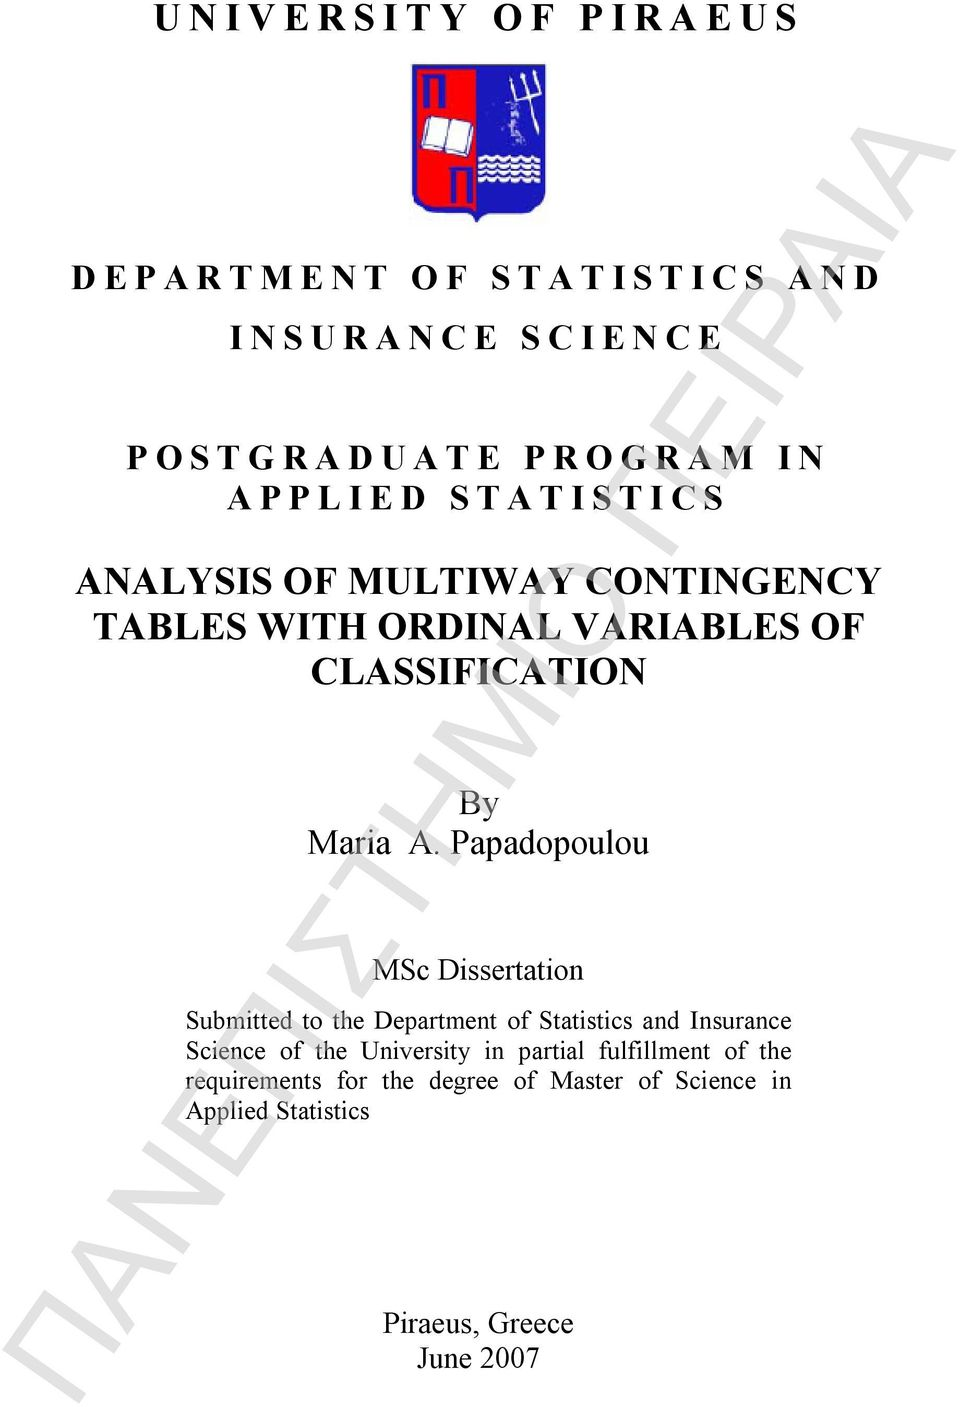 Papadopoulou MSc Dissertation Submitted to the Department of Statistics and Insurance Science of the